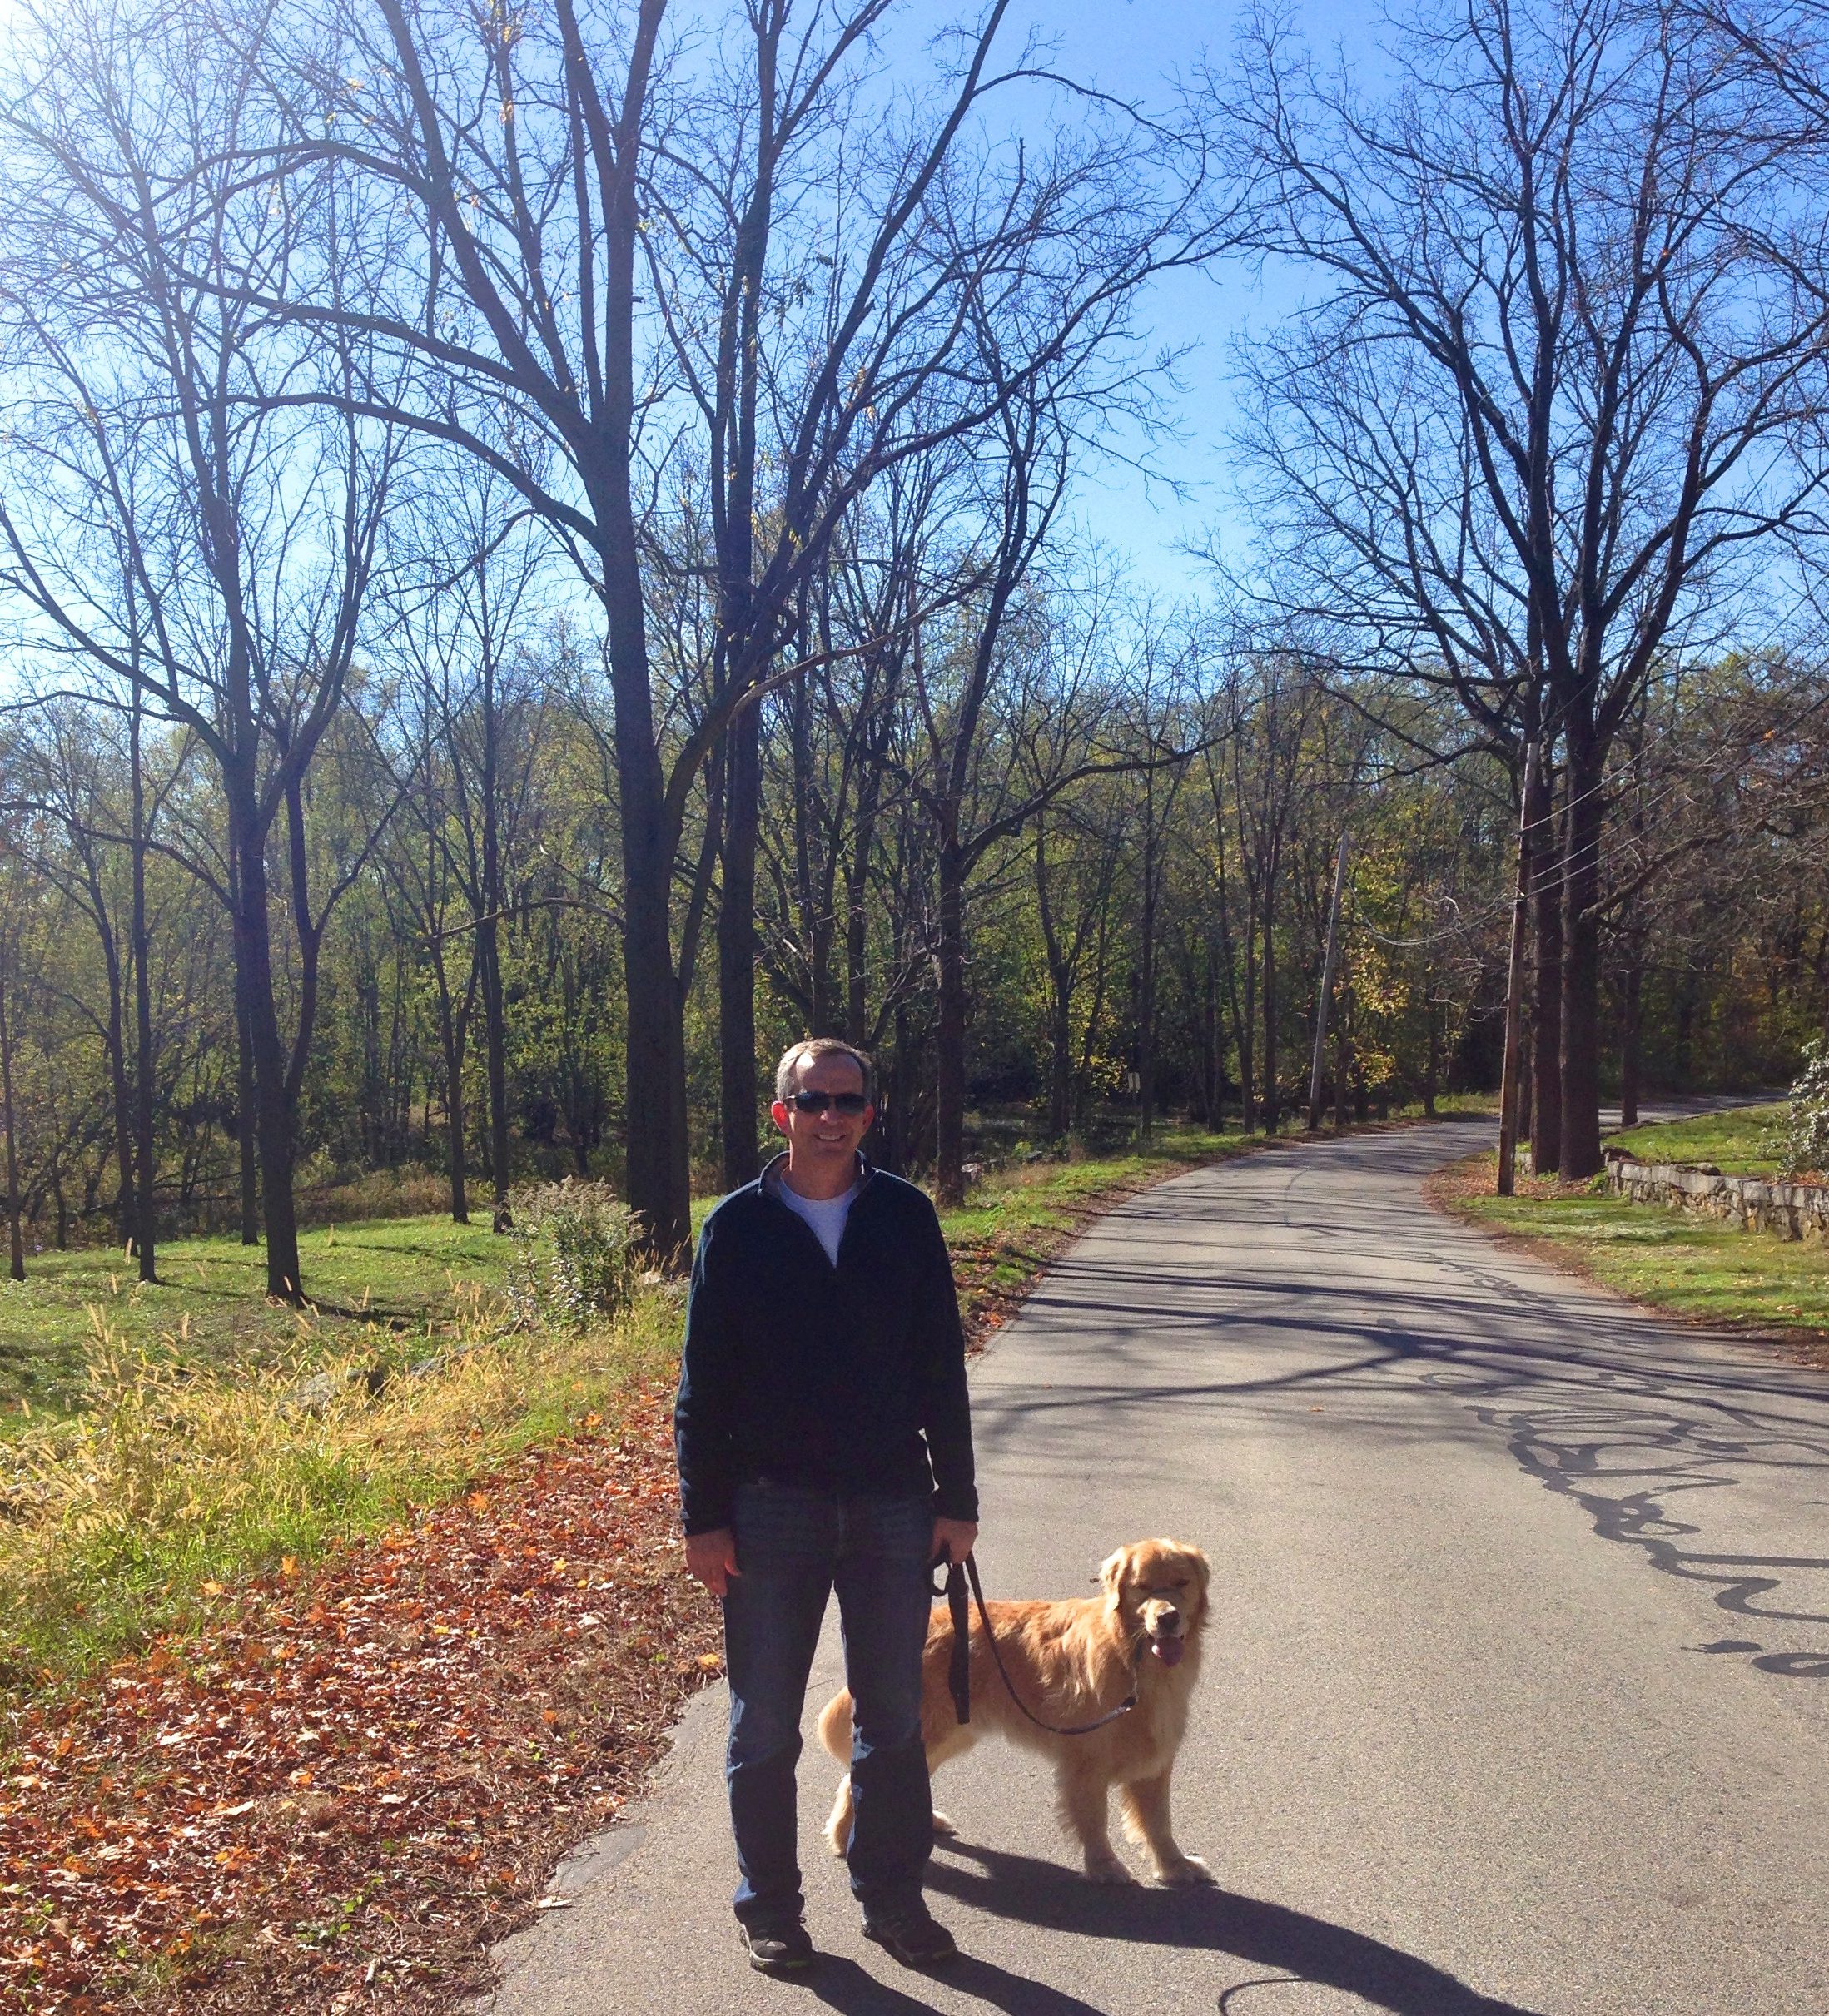 {A great walk with my handsome Dad with my handsome pup this past weekend}